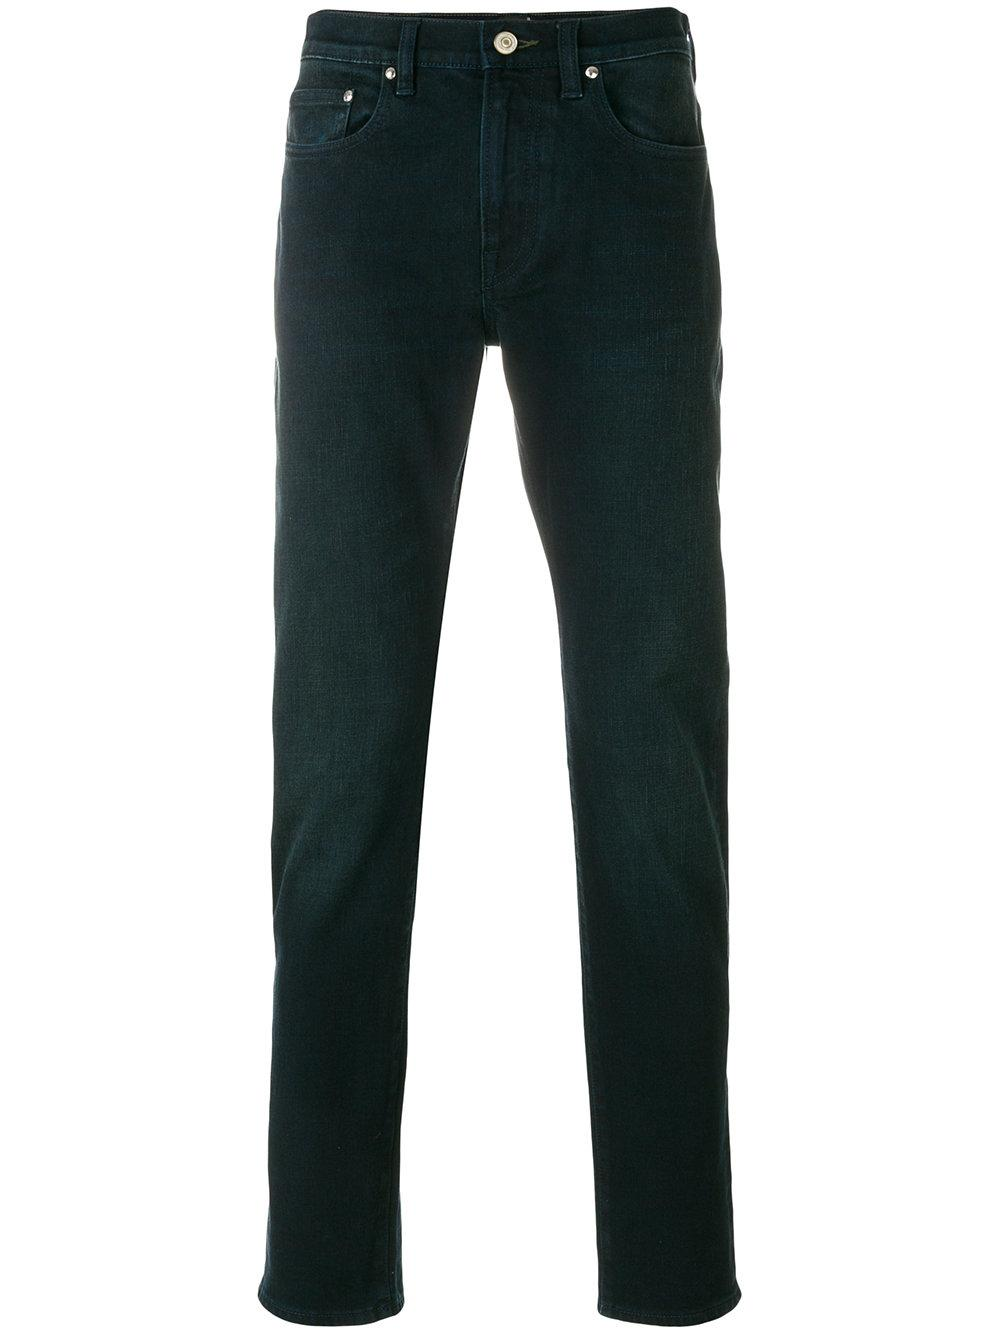 Ps By Paul Smith Super Soft Cross-hatch Jeans